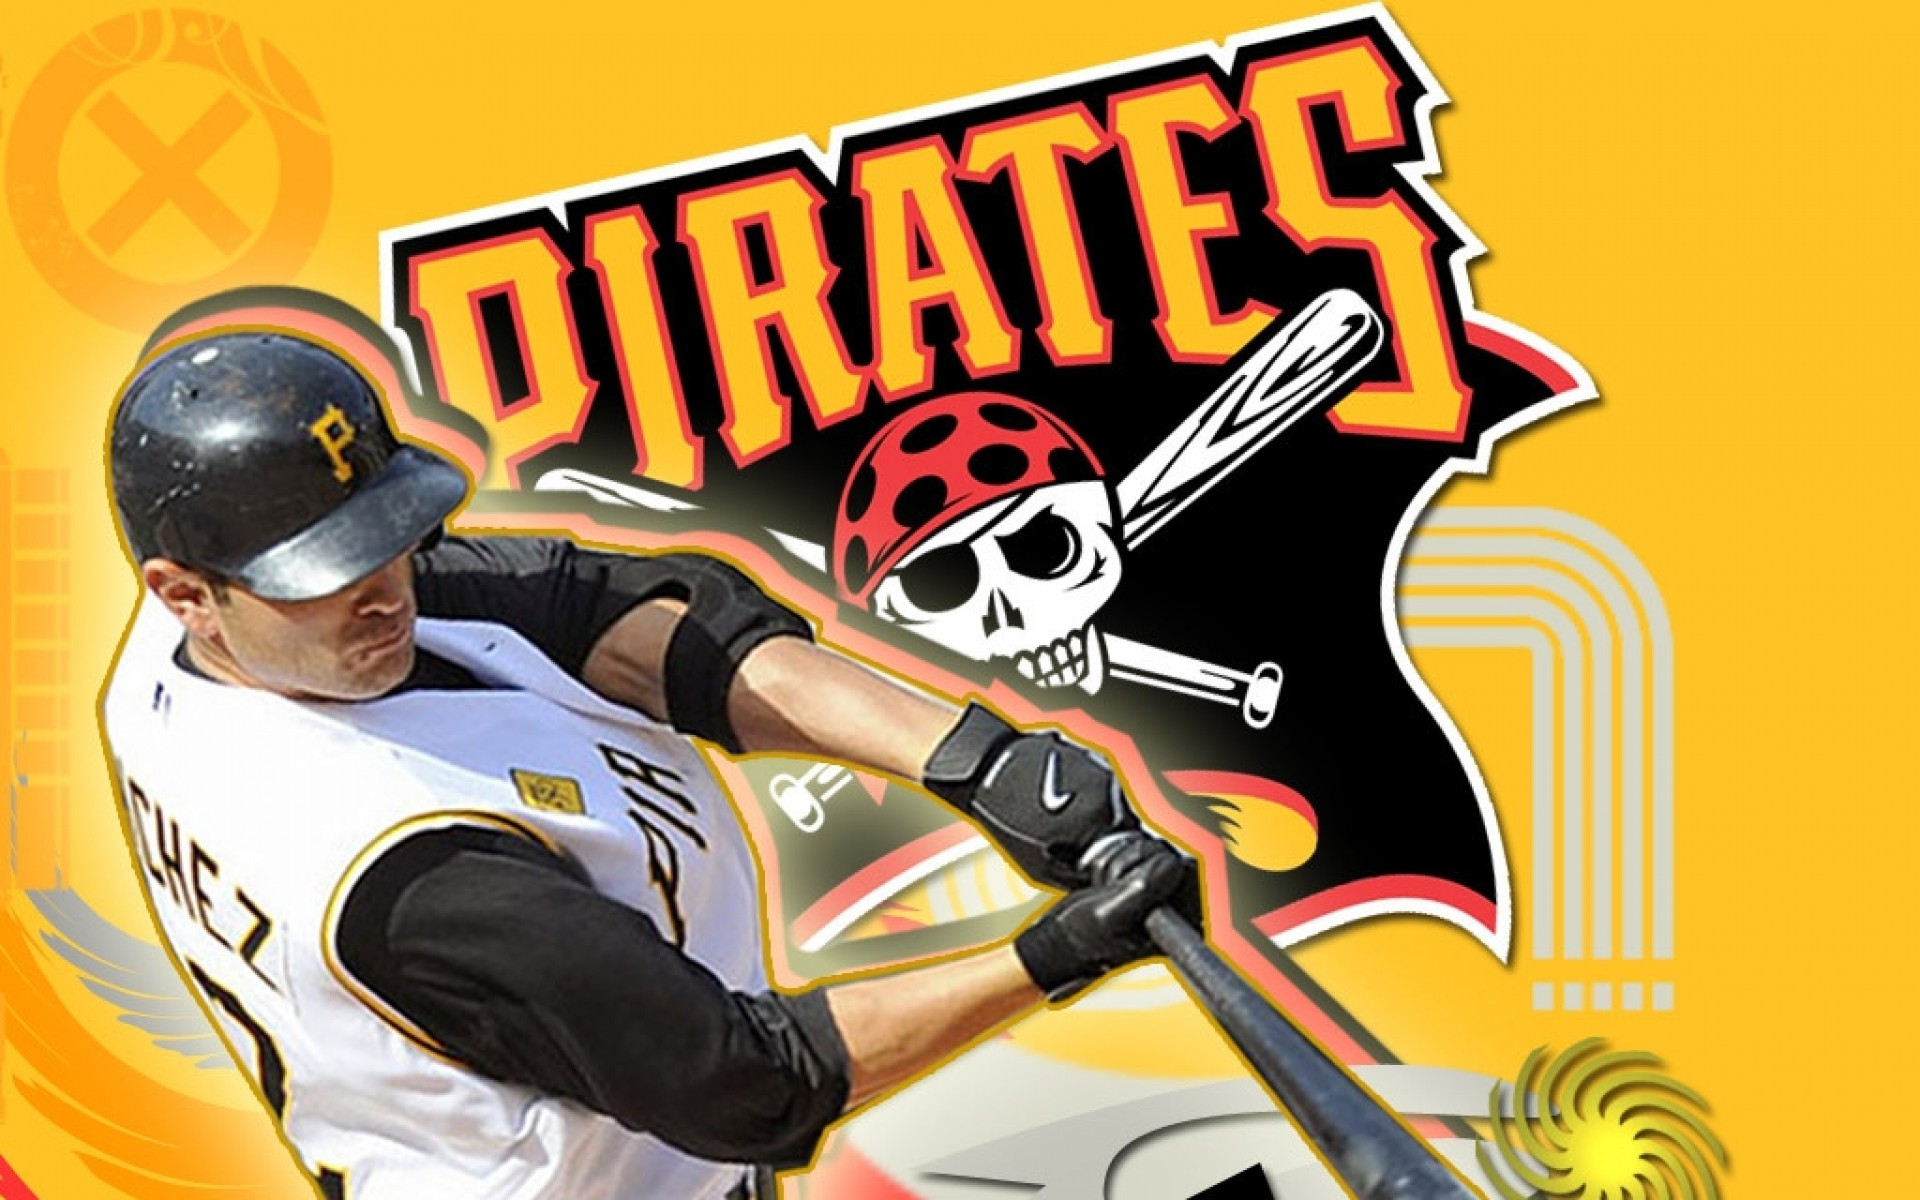 Pittsburgh Pirates HD Wallpapers   Hd Wallpapers